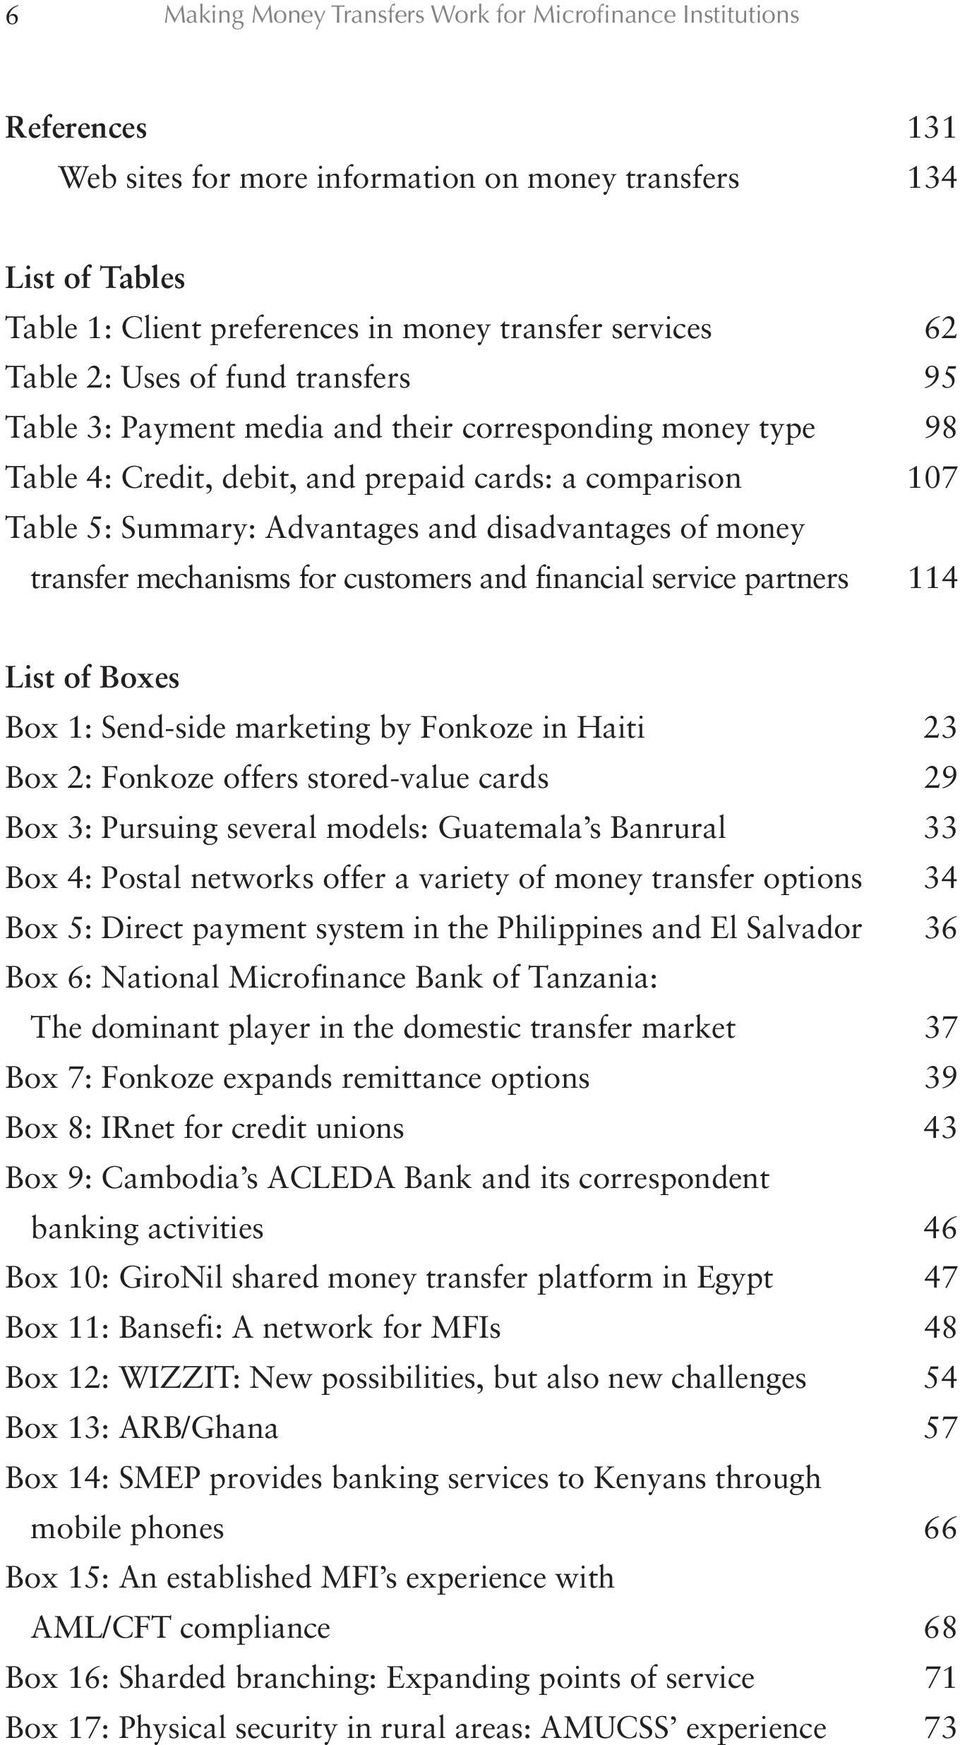 disadvantages of money transfer mechanisms for customers and financial service partners 114 List of Boxes Box 1: Send-side marketing by Fonkoze in Haiti 23 Box 2: Fonkoze offers stored-value cards 29